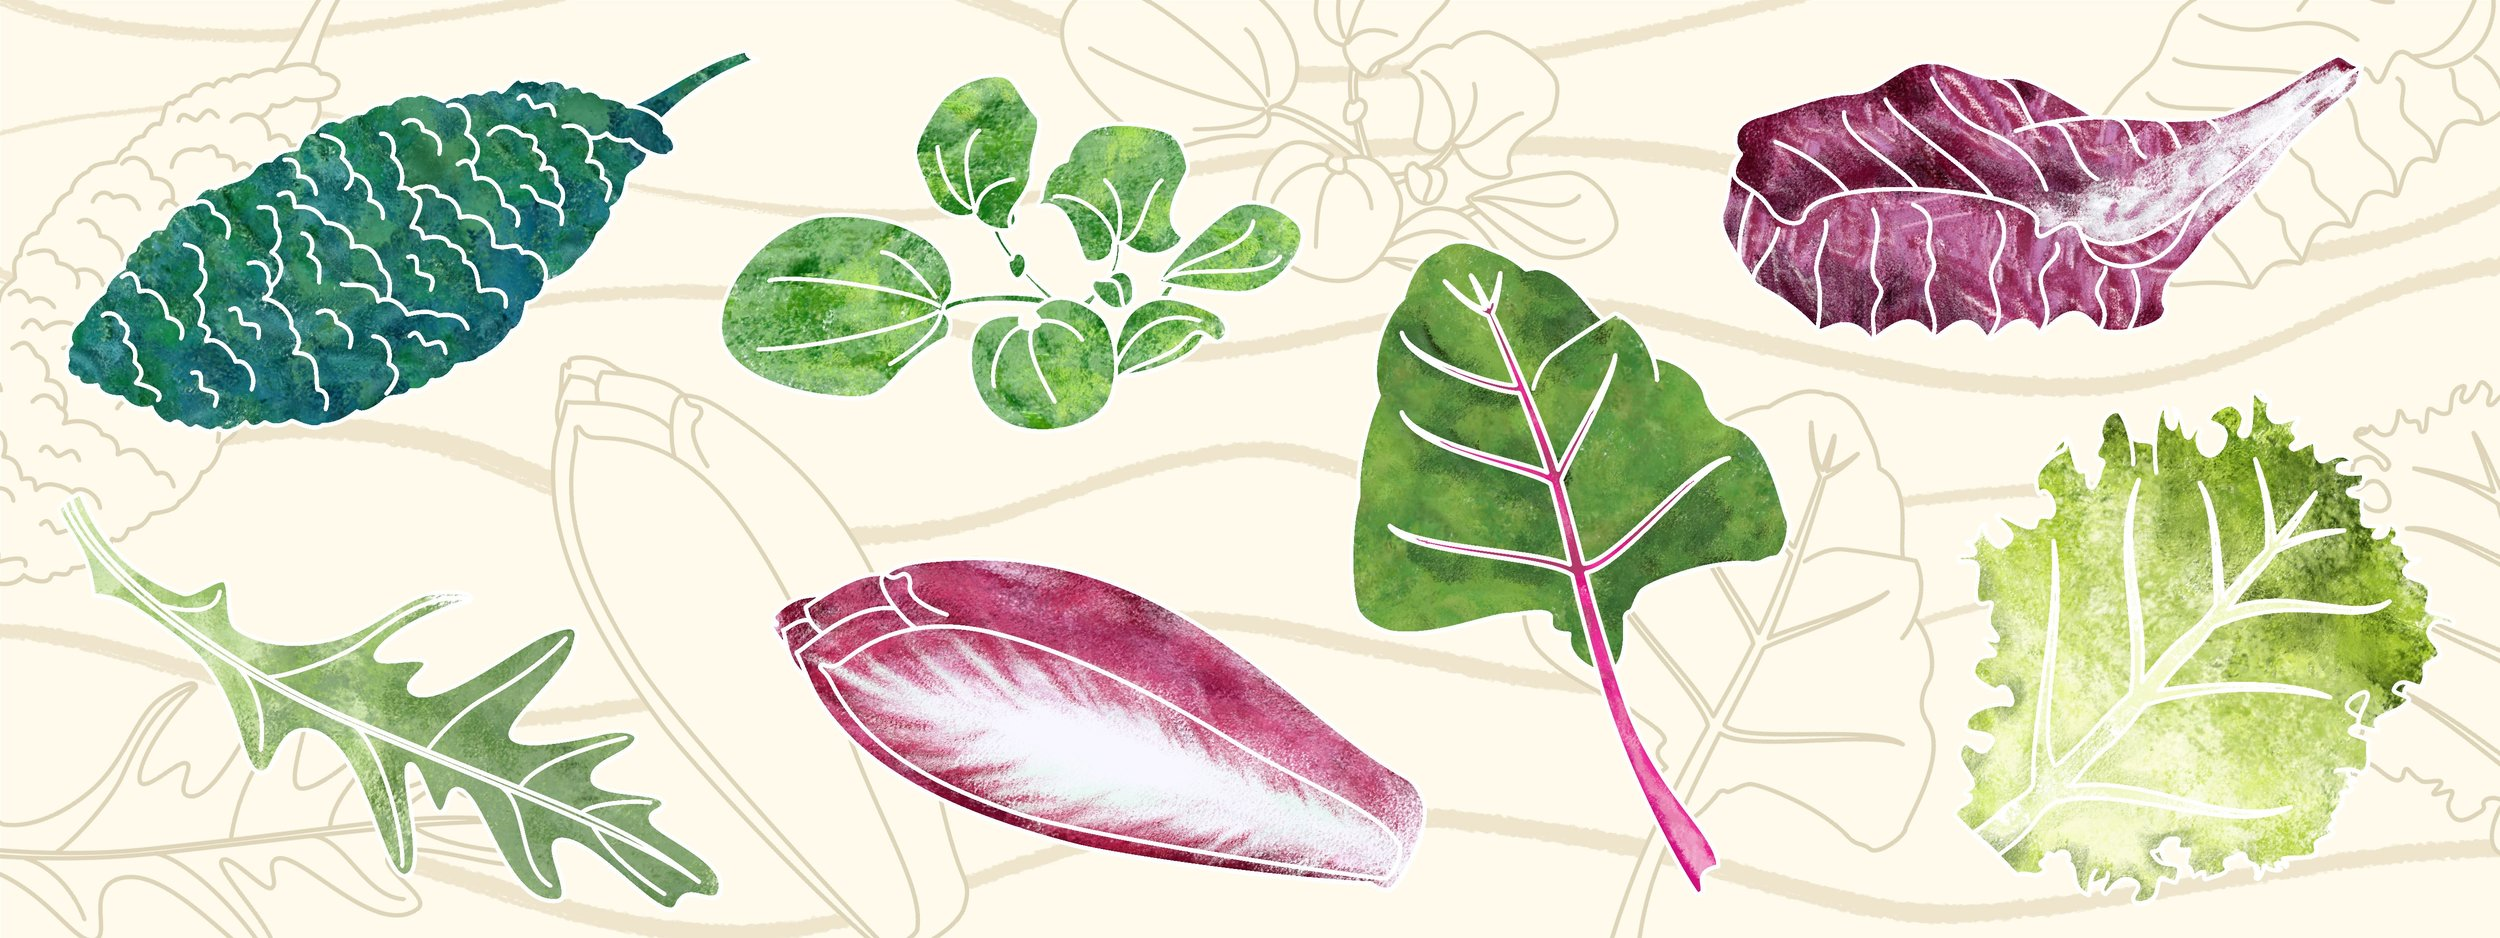 A feast of greens: kale, spinach, radicchio, lettuce, chard, endive, rocket.